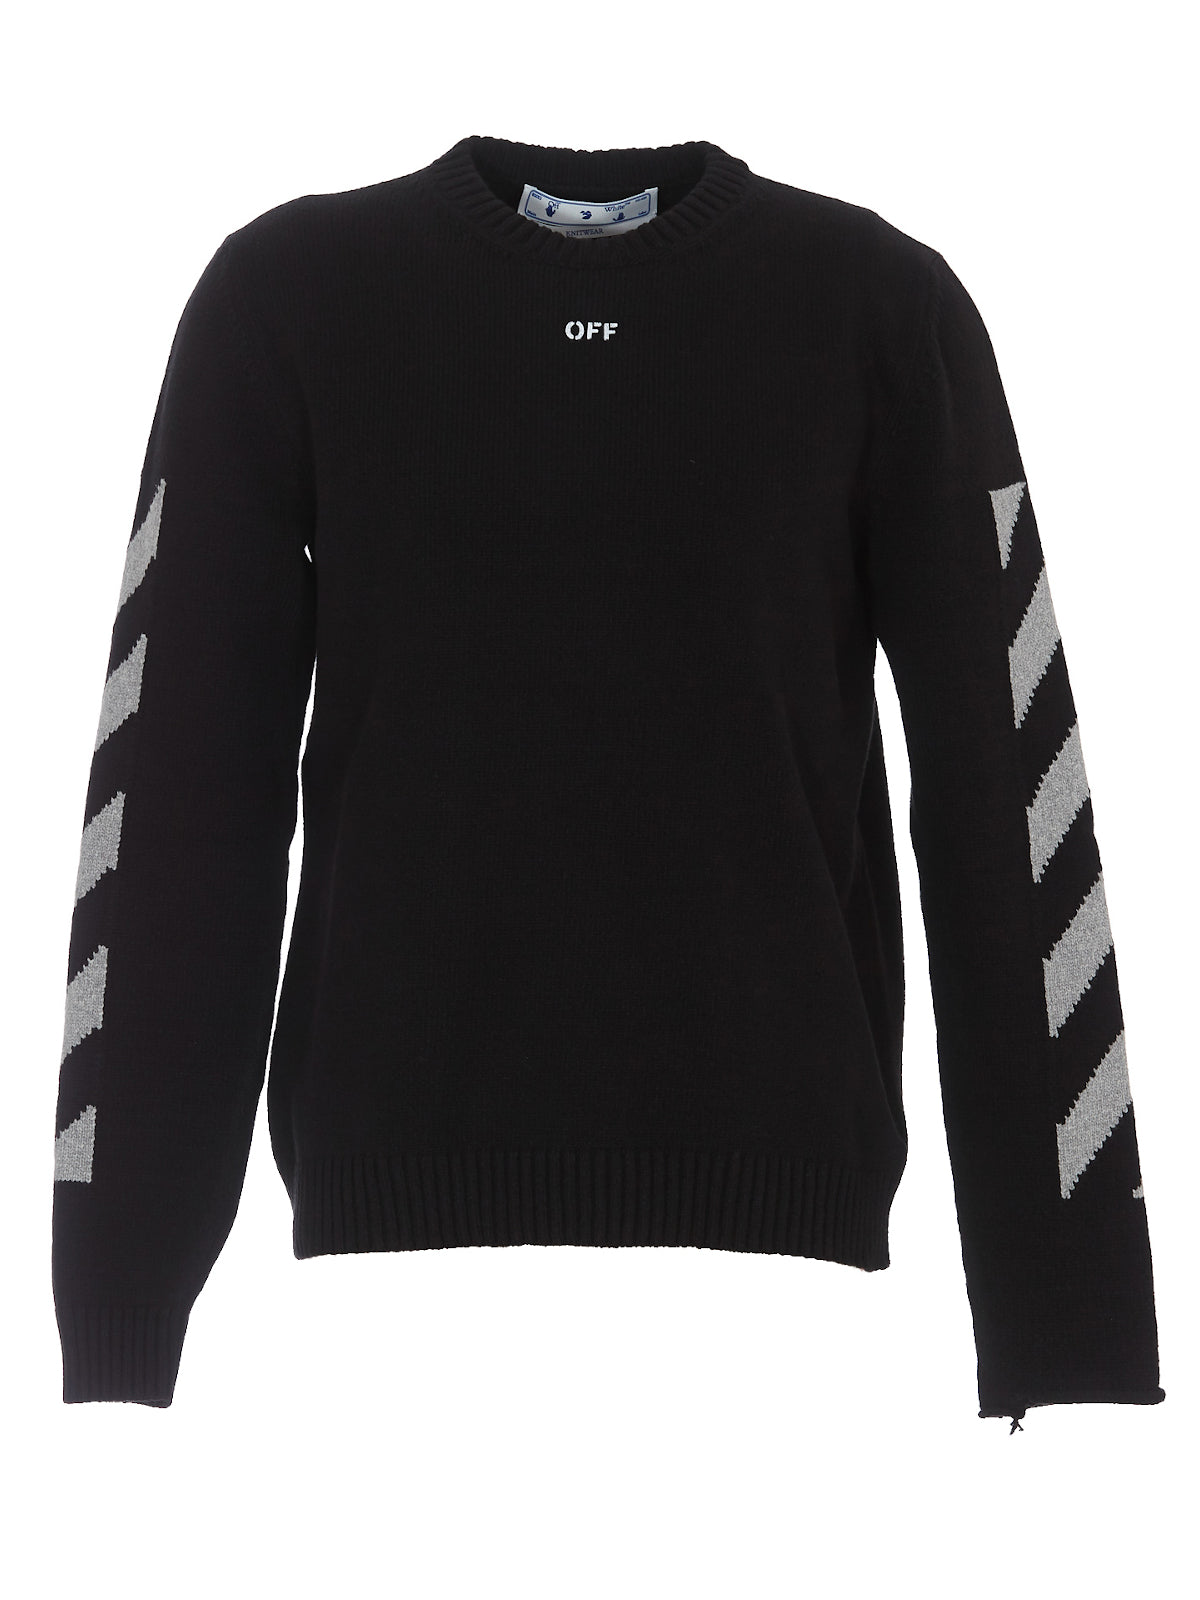 Arrow crewneck In Black High Rise